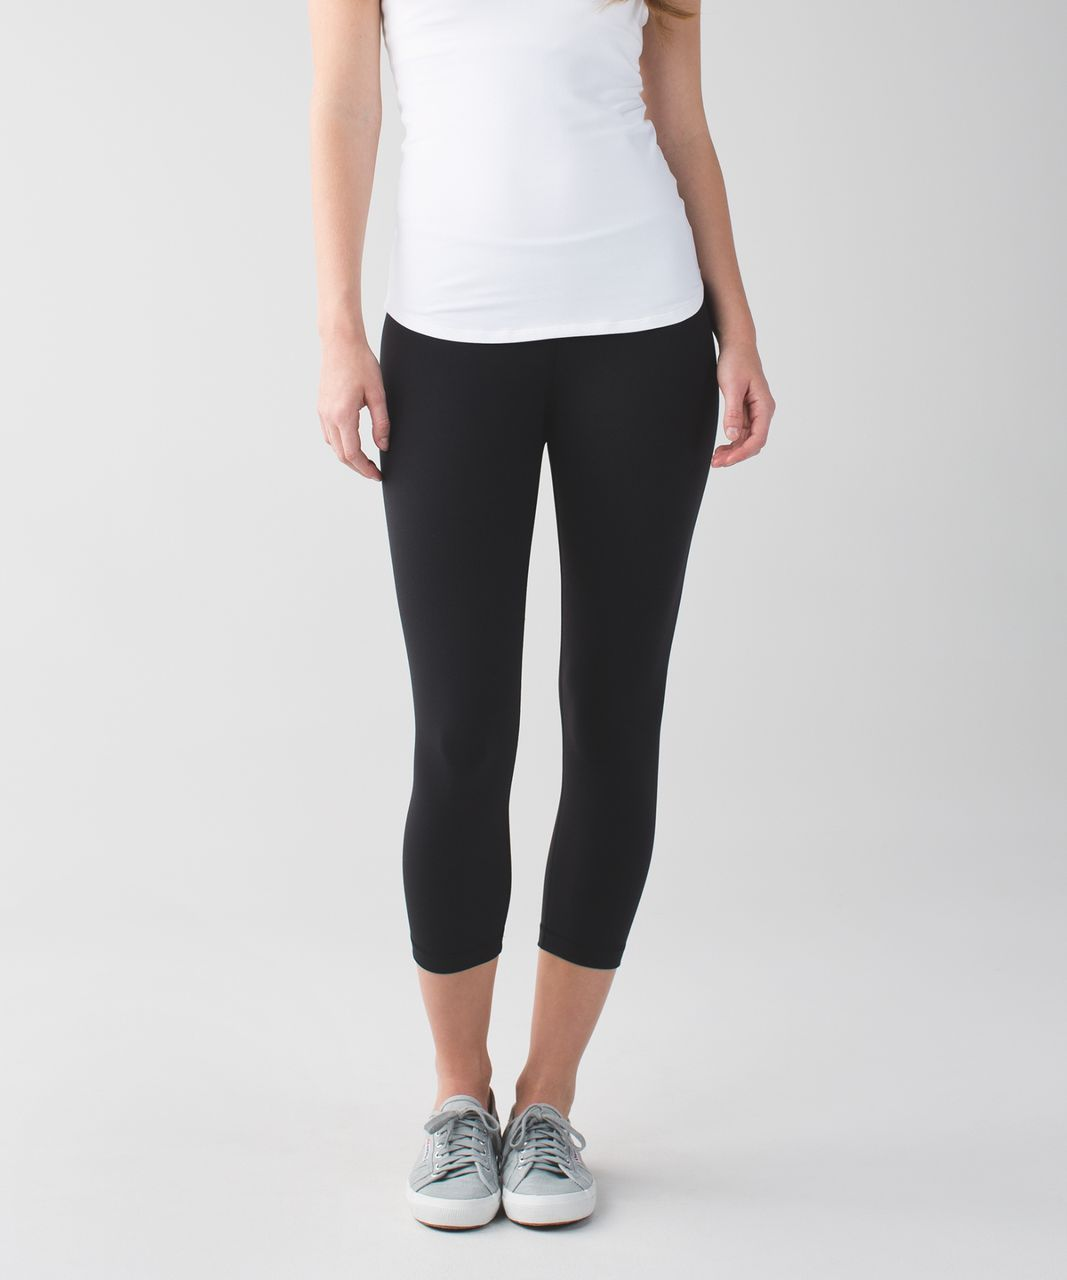 Lululemon Wunder Under Crop II *Full-On Luon (First Release) - Black